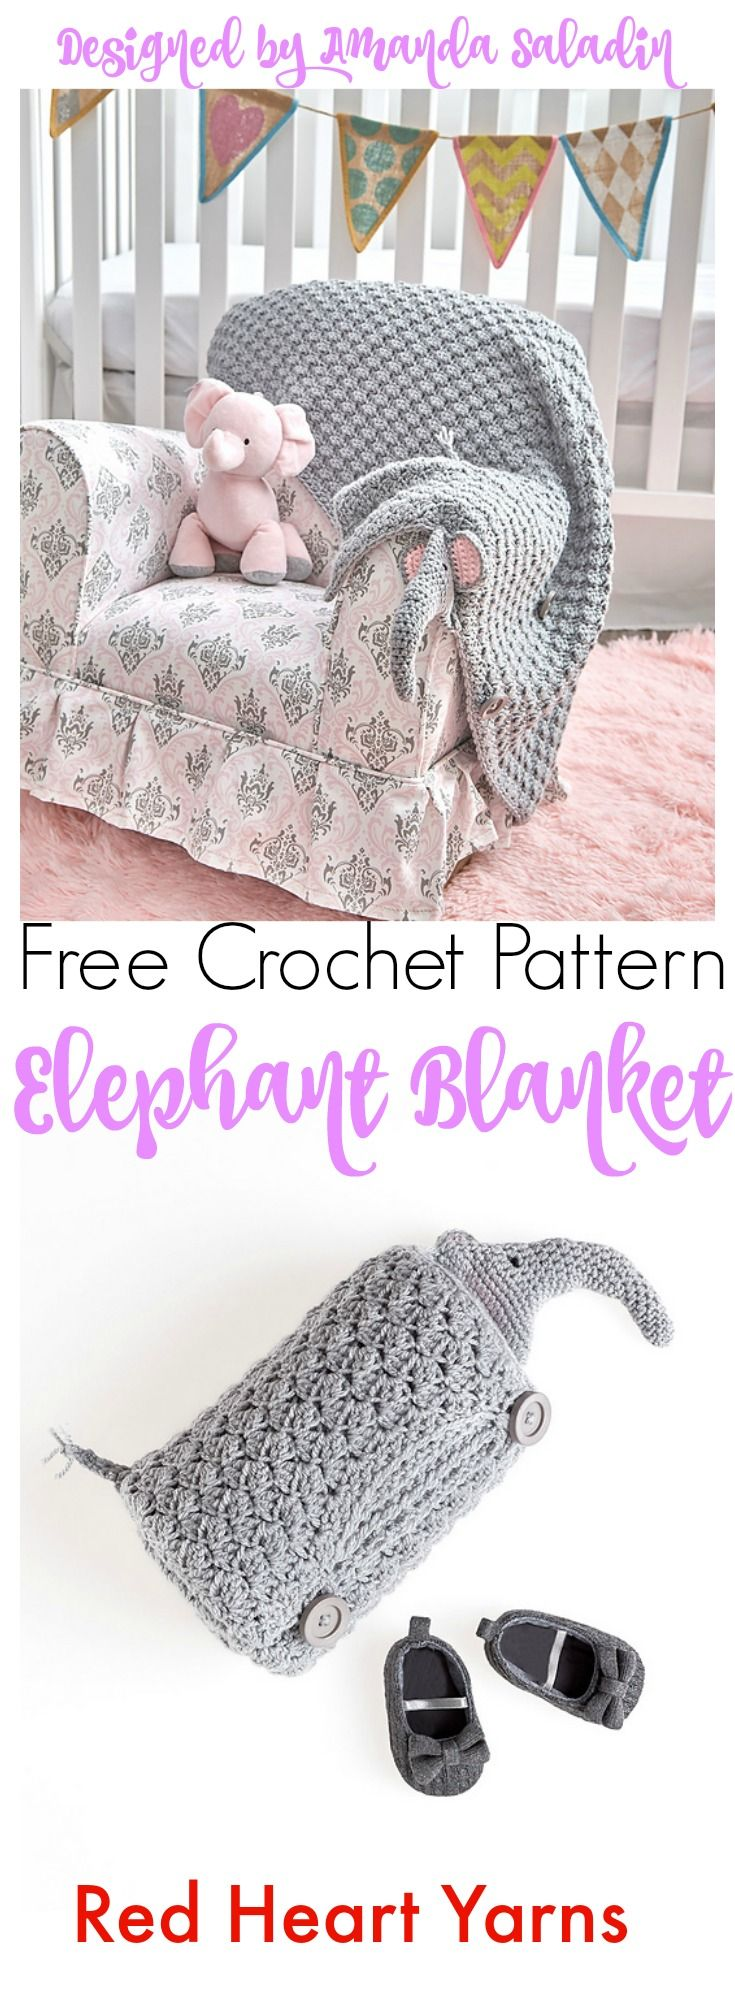 436 best baby afghan pattern images on Pinterest | Knitting patterns ...